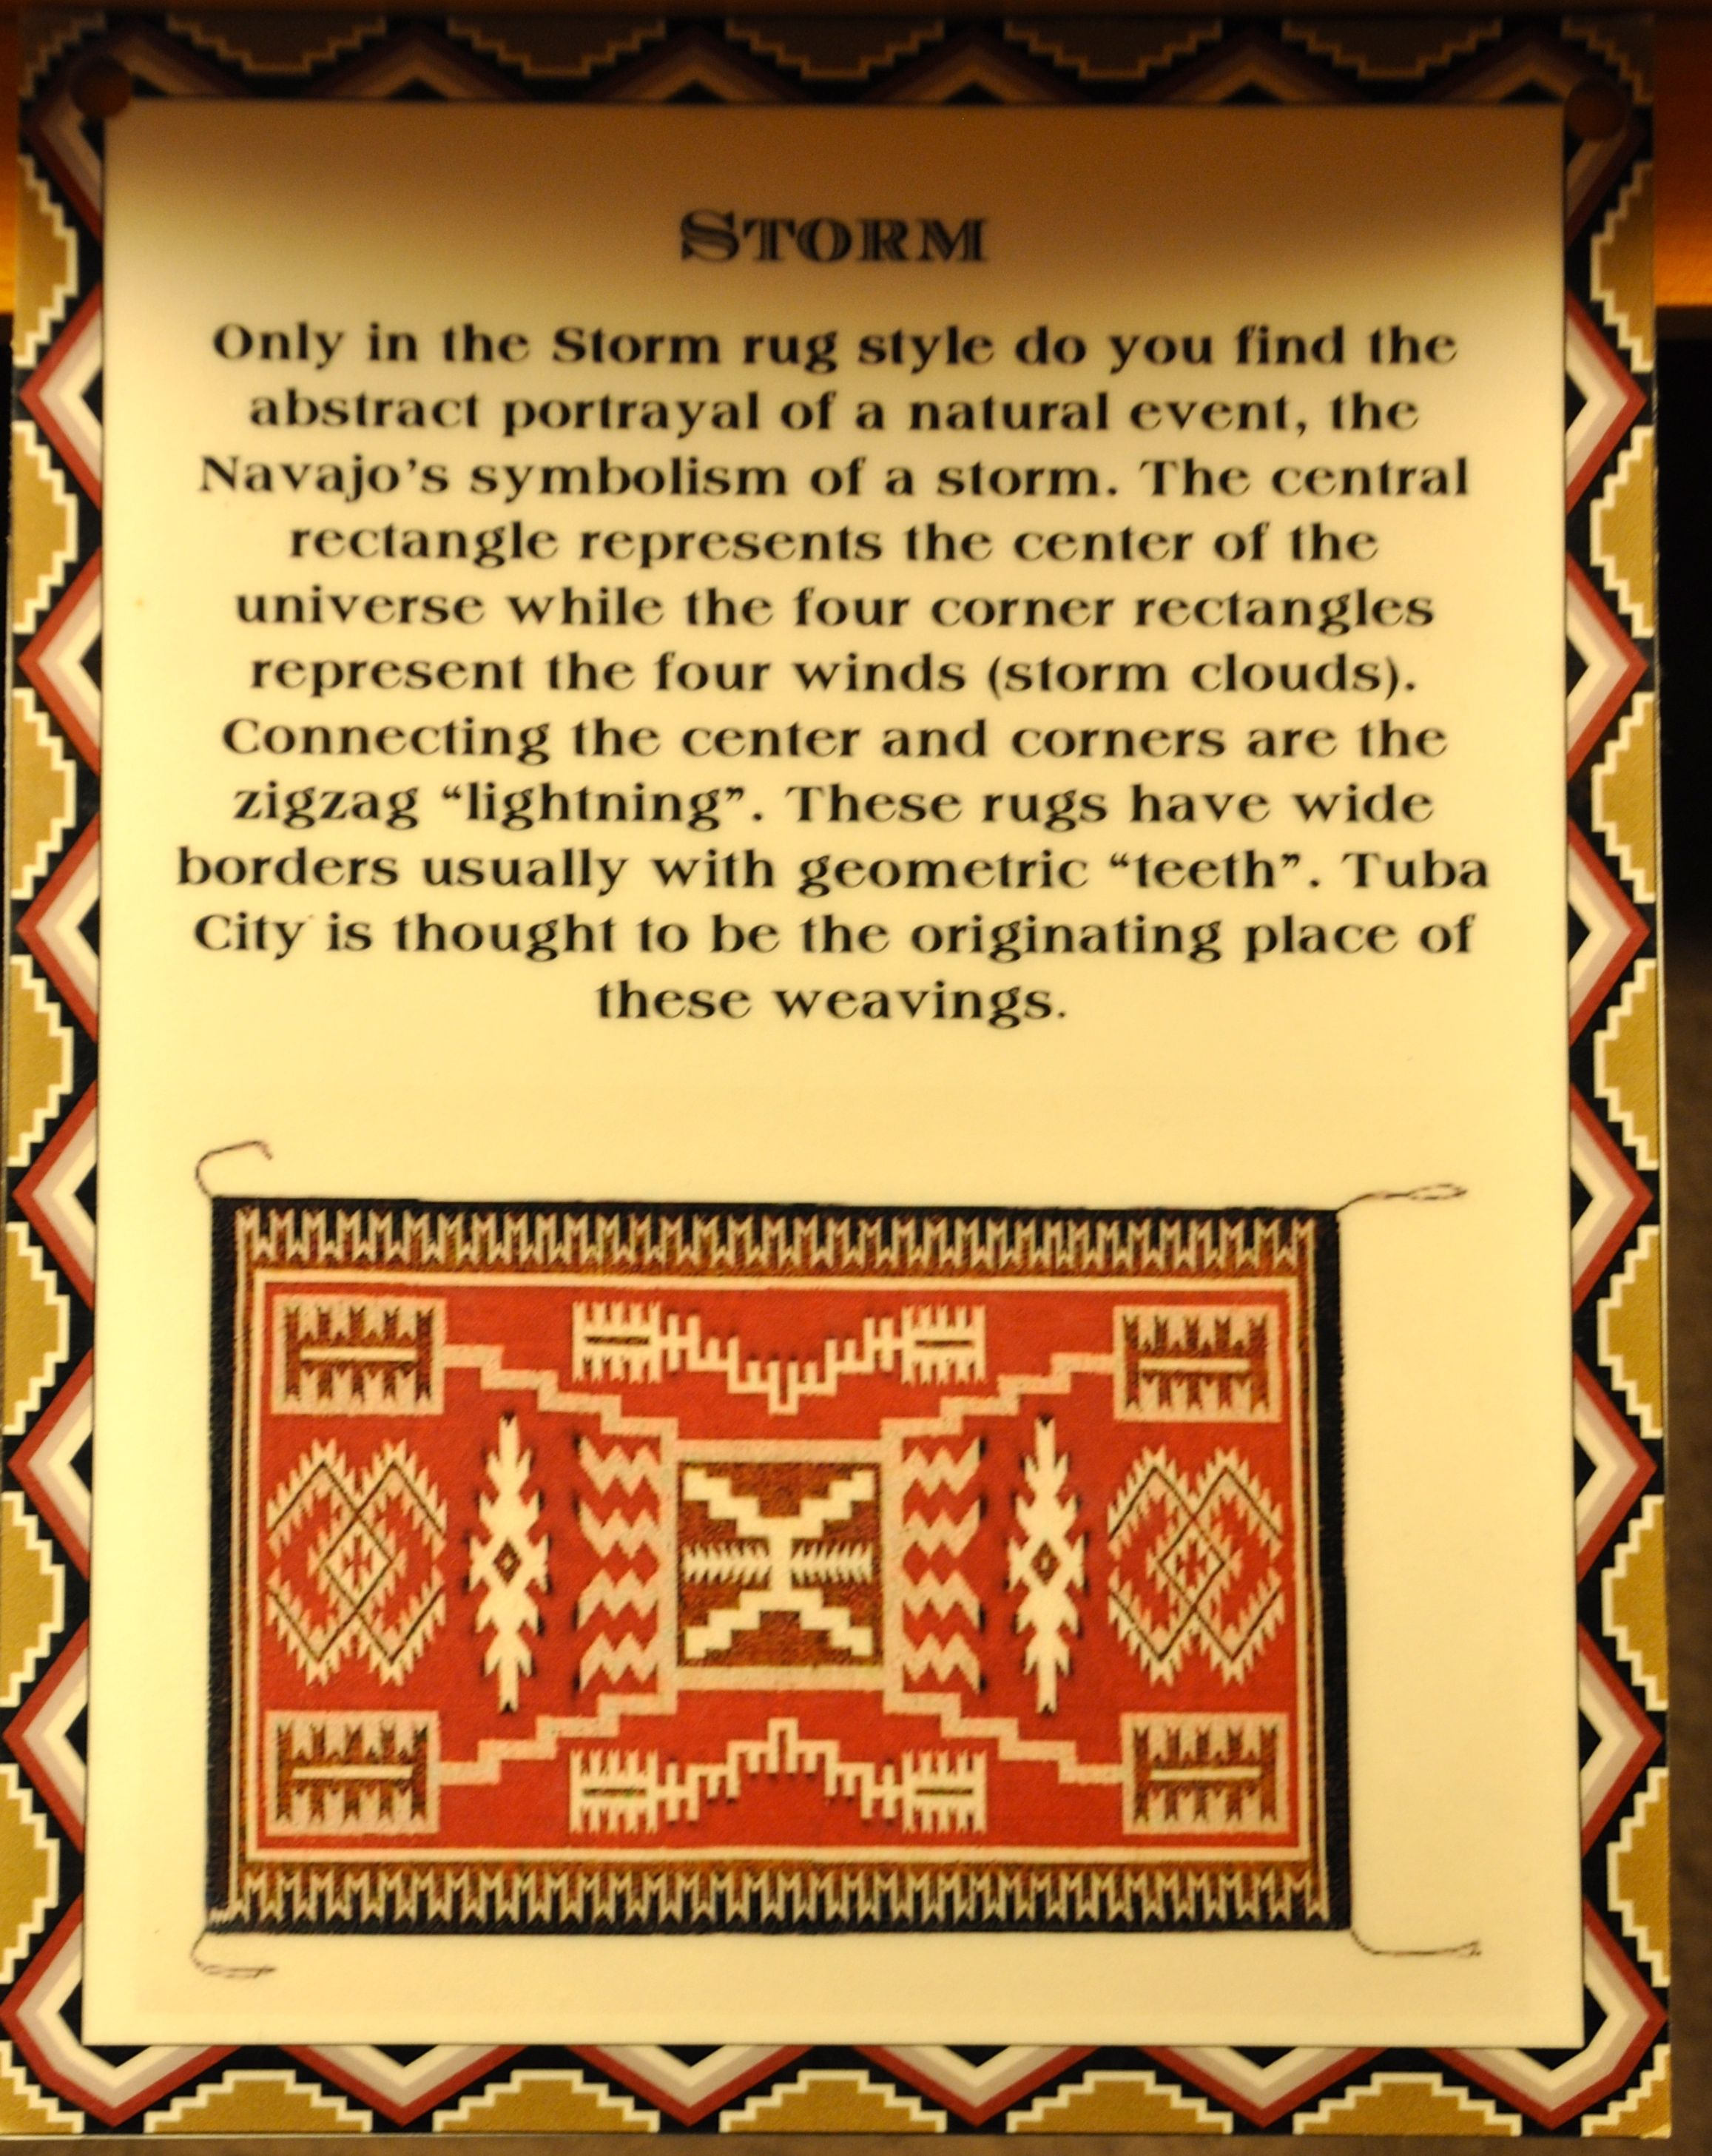 Information on navajo weaving from the hopi house at the grand information on navajo weaving from the hopi house at the grand canyon biocorpaavc Images